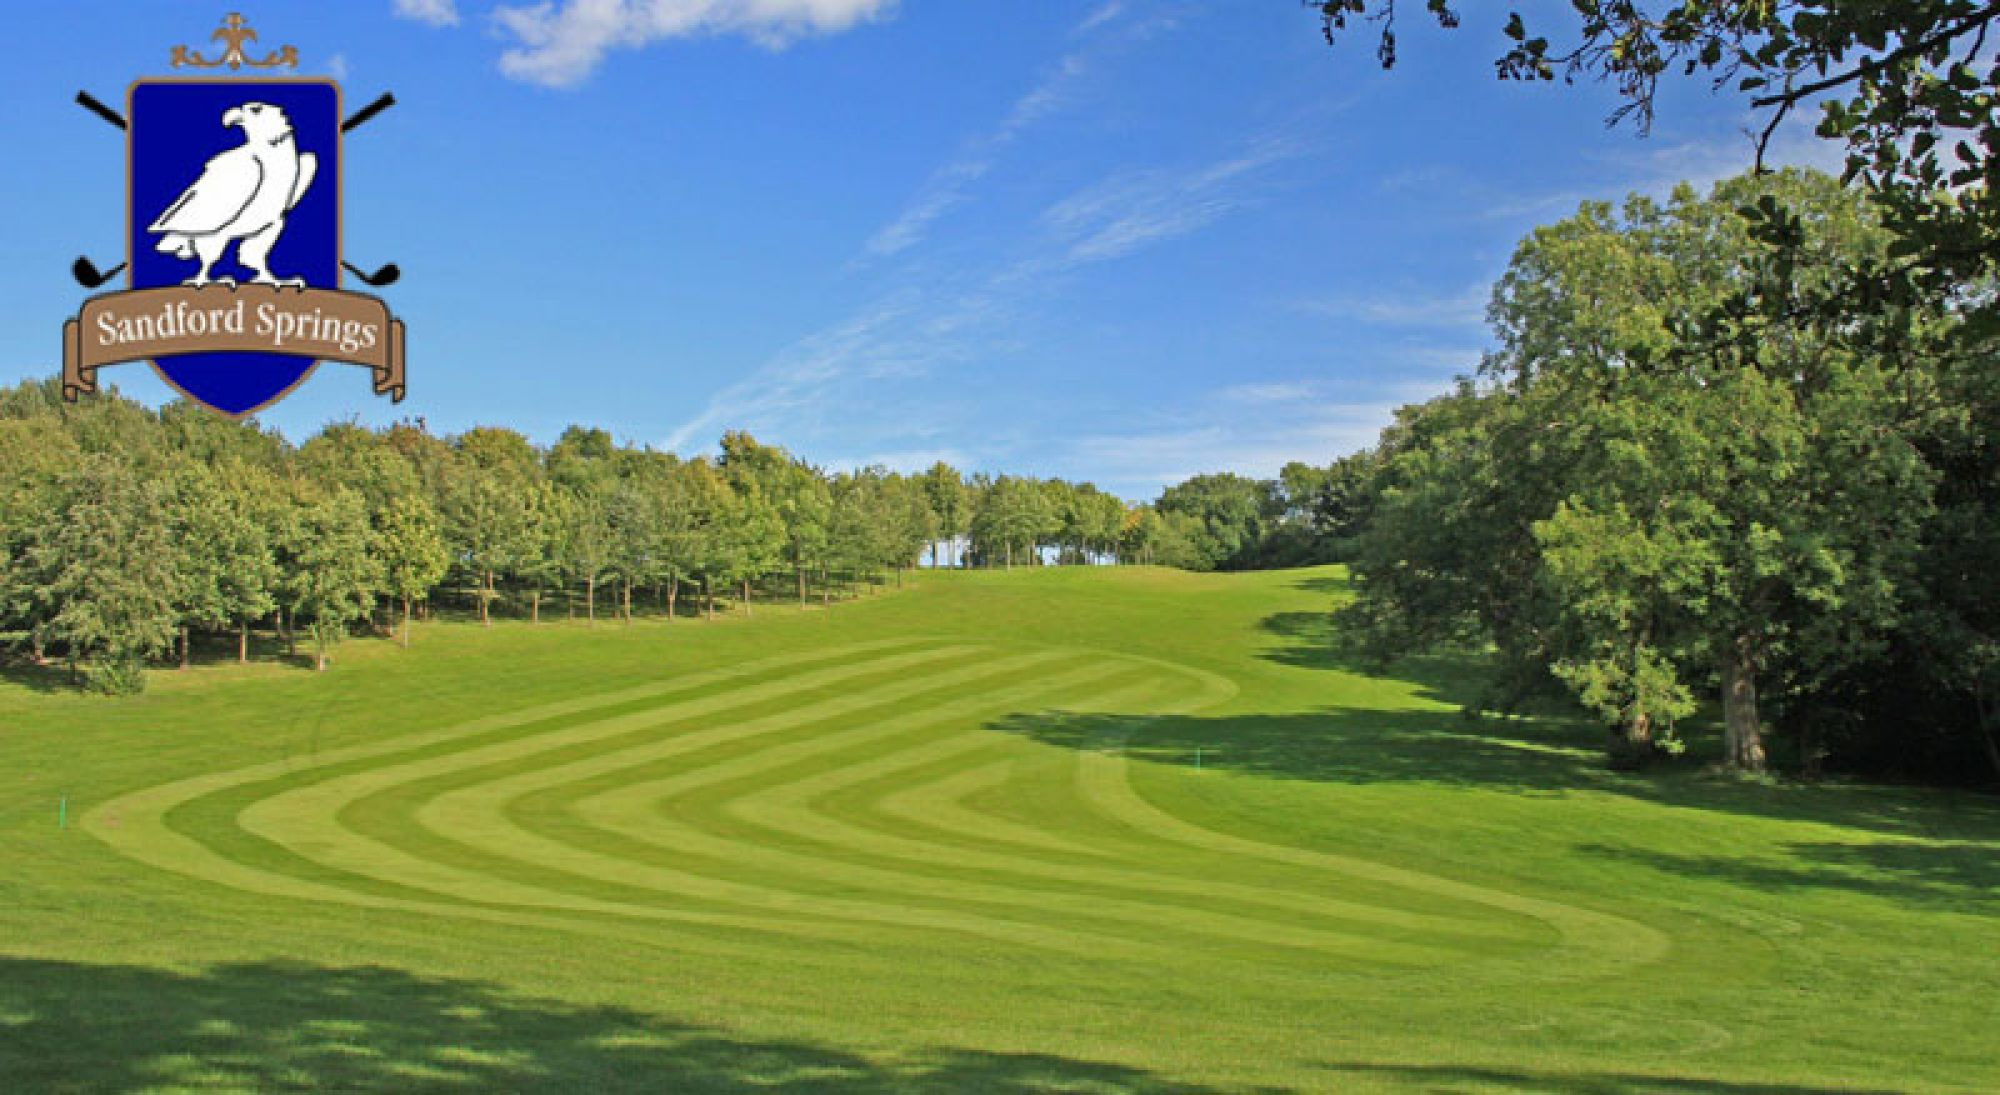 The Sandford Springs Golf Club's beautiful golf course within dazzling Hampshire.